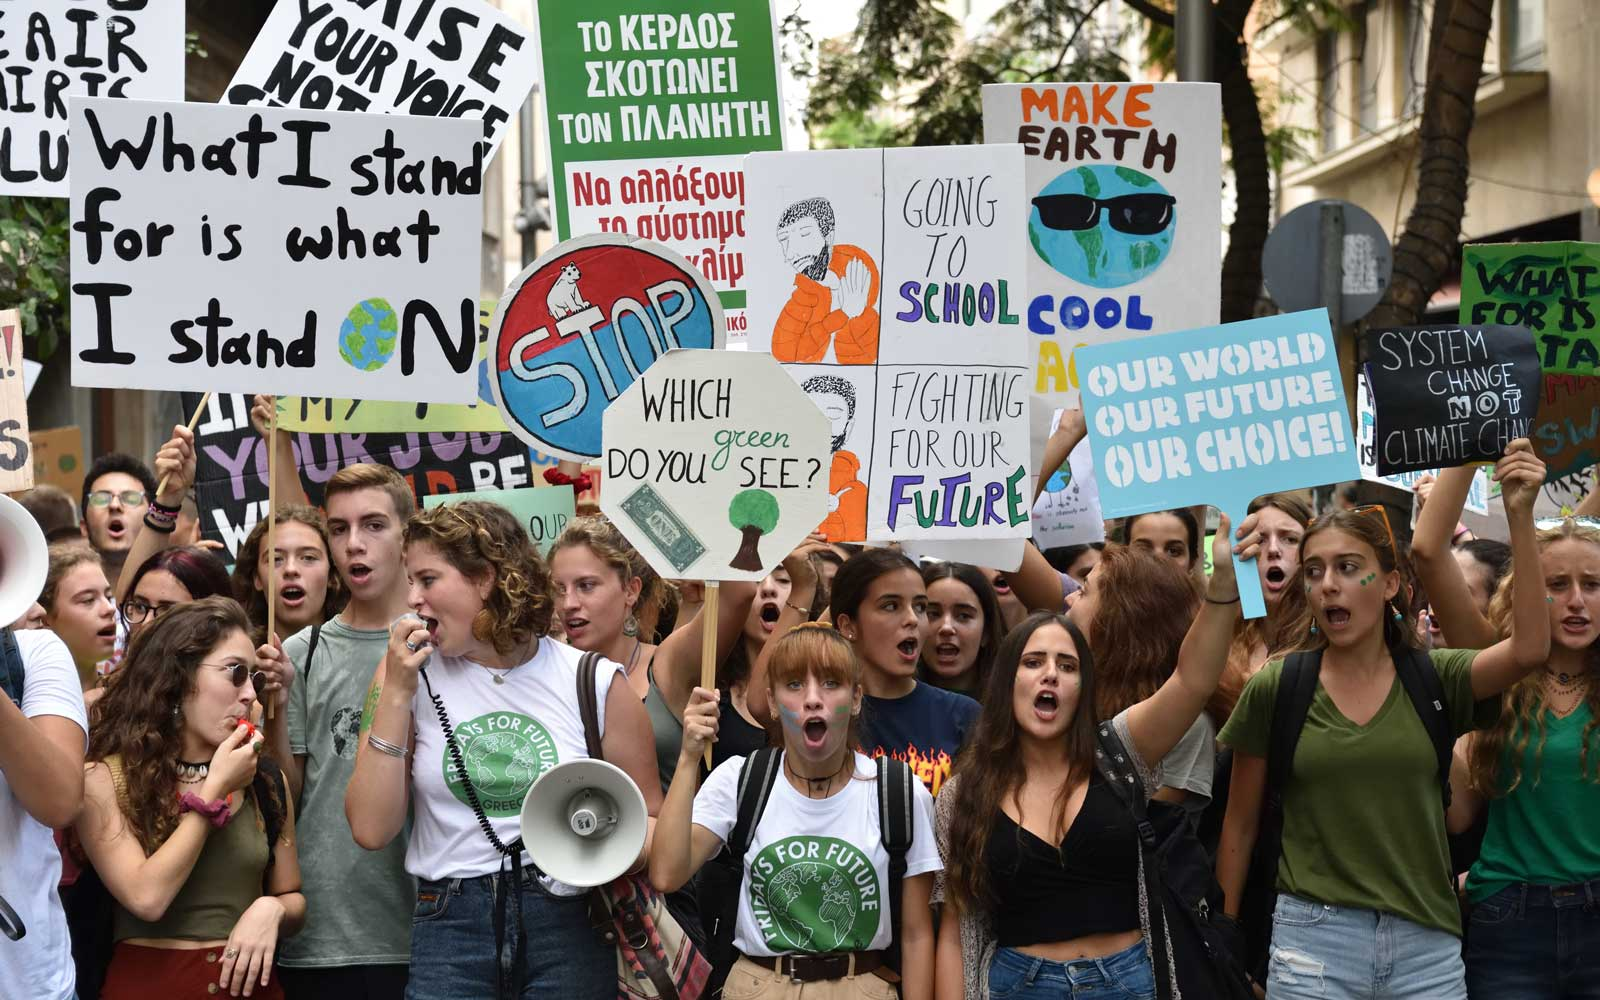 Global Climate Strike, September 20, 2019